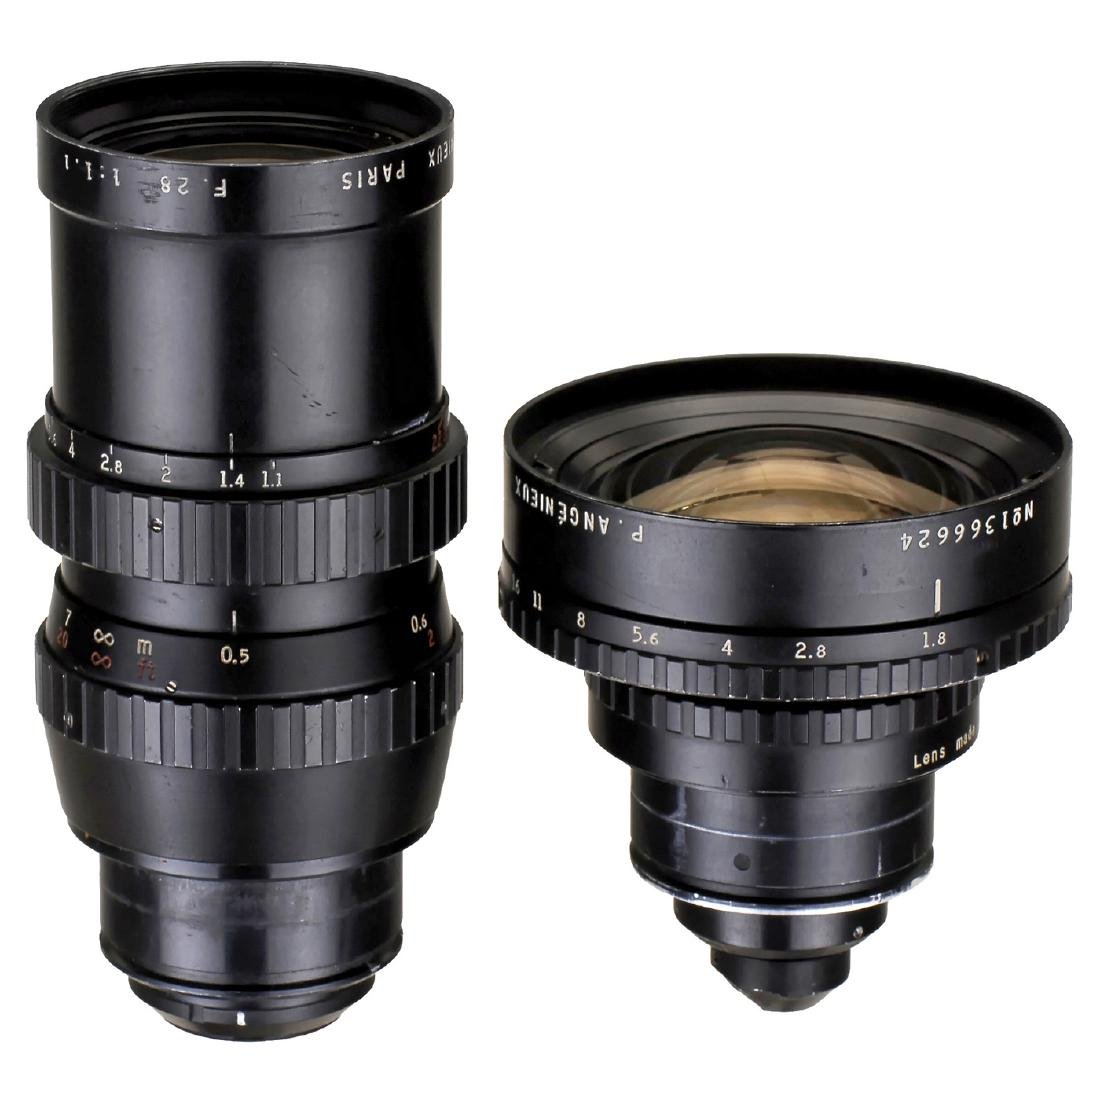 2 St-Mount Movie Camera Lenses, c. 1975